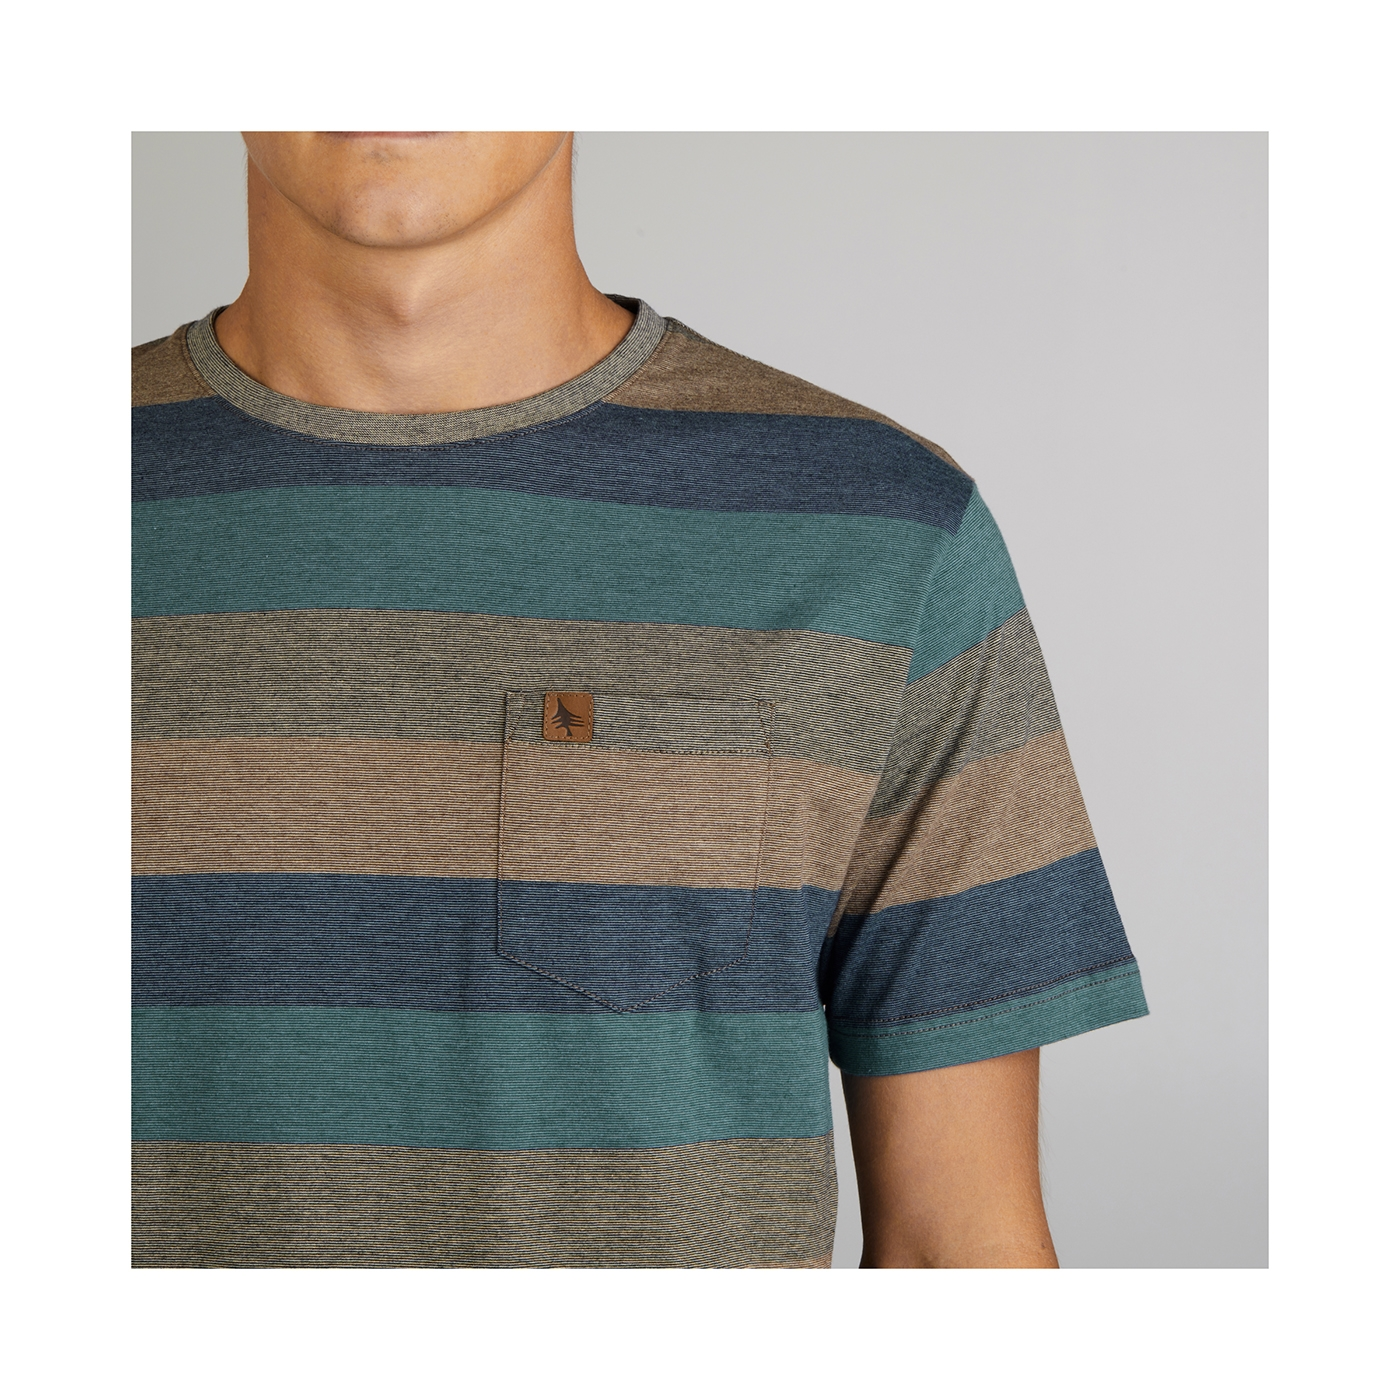 Riverton Knit Tee